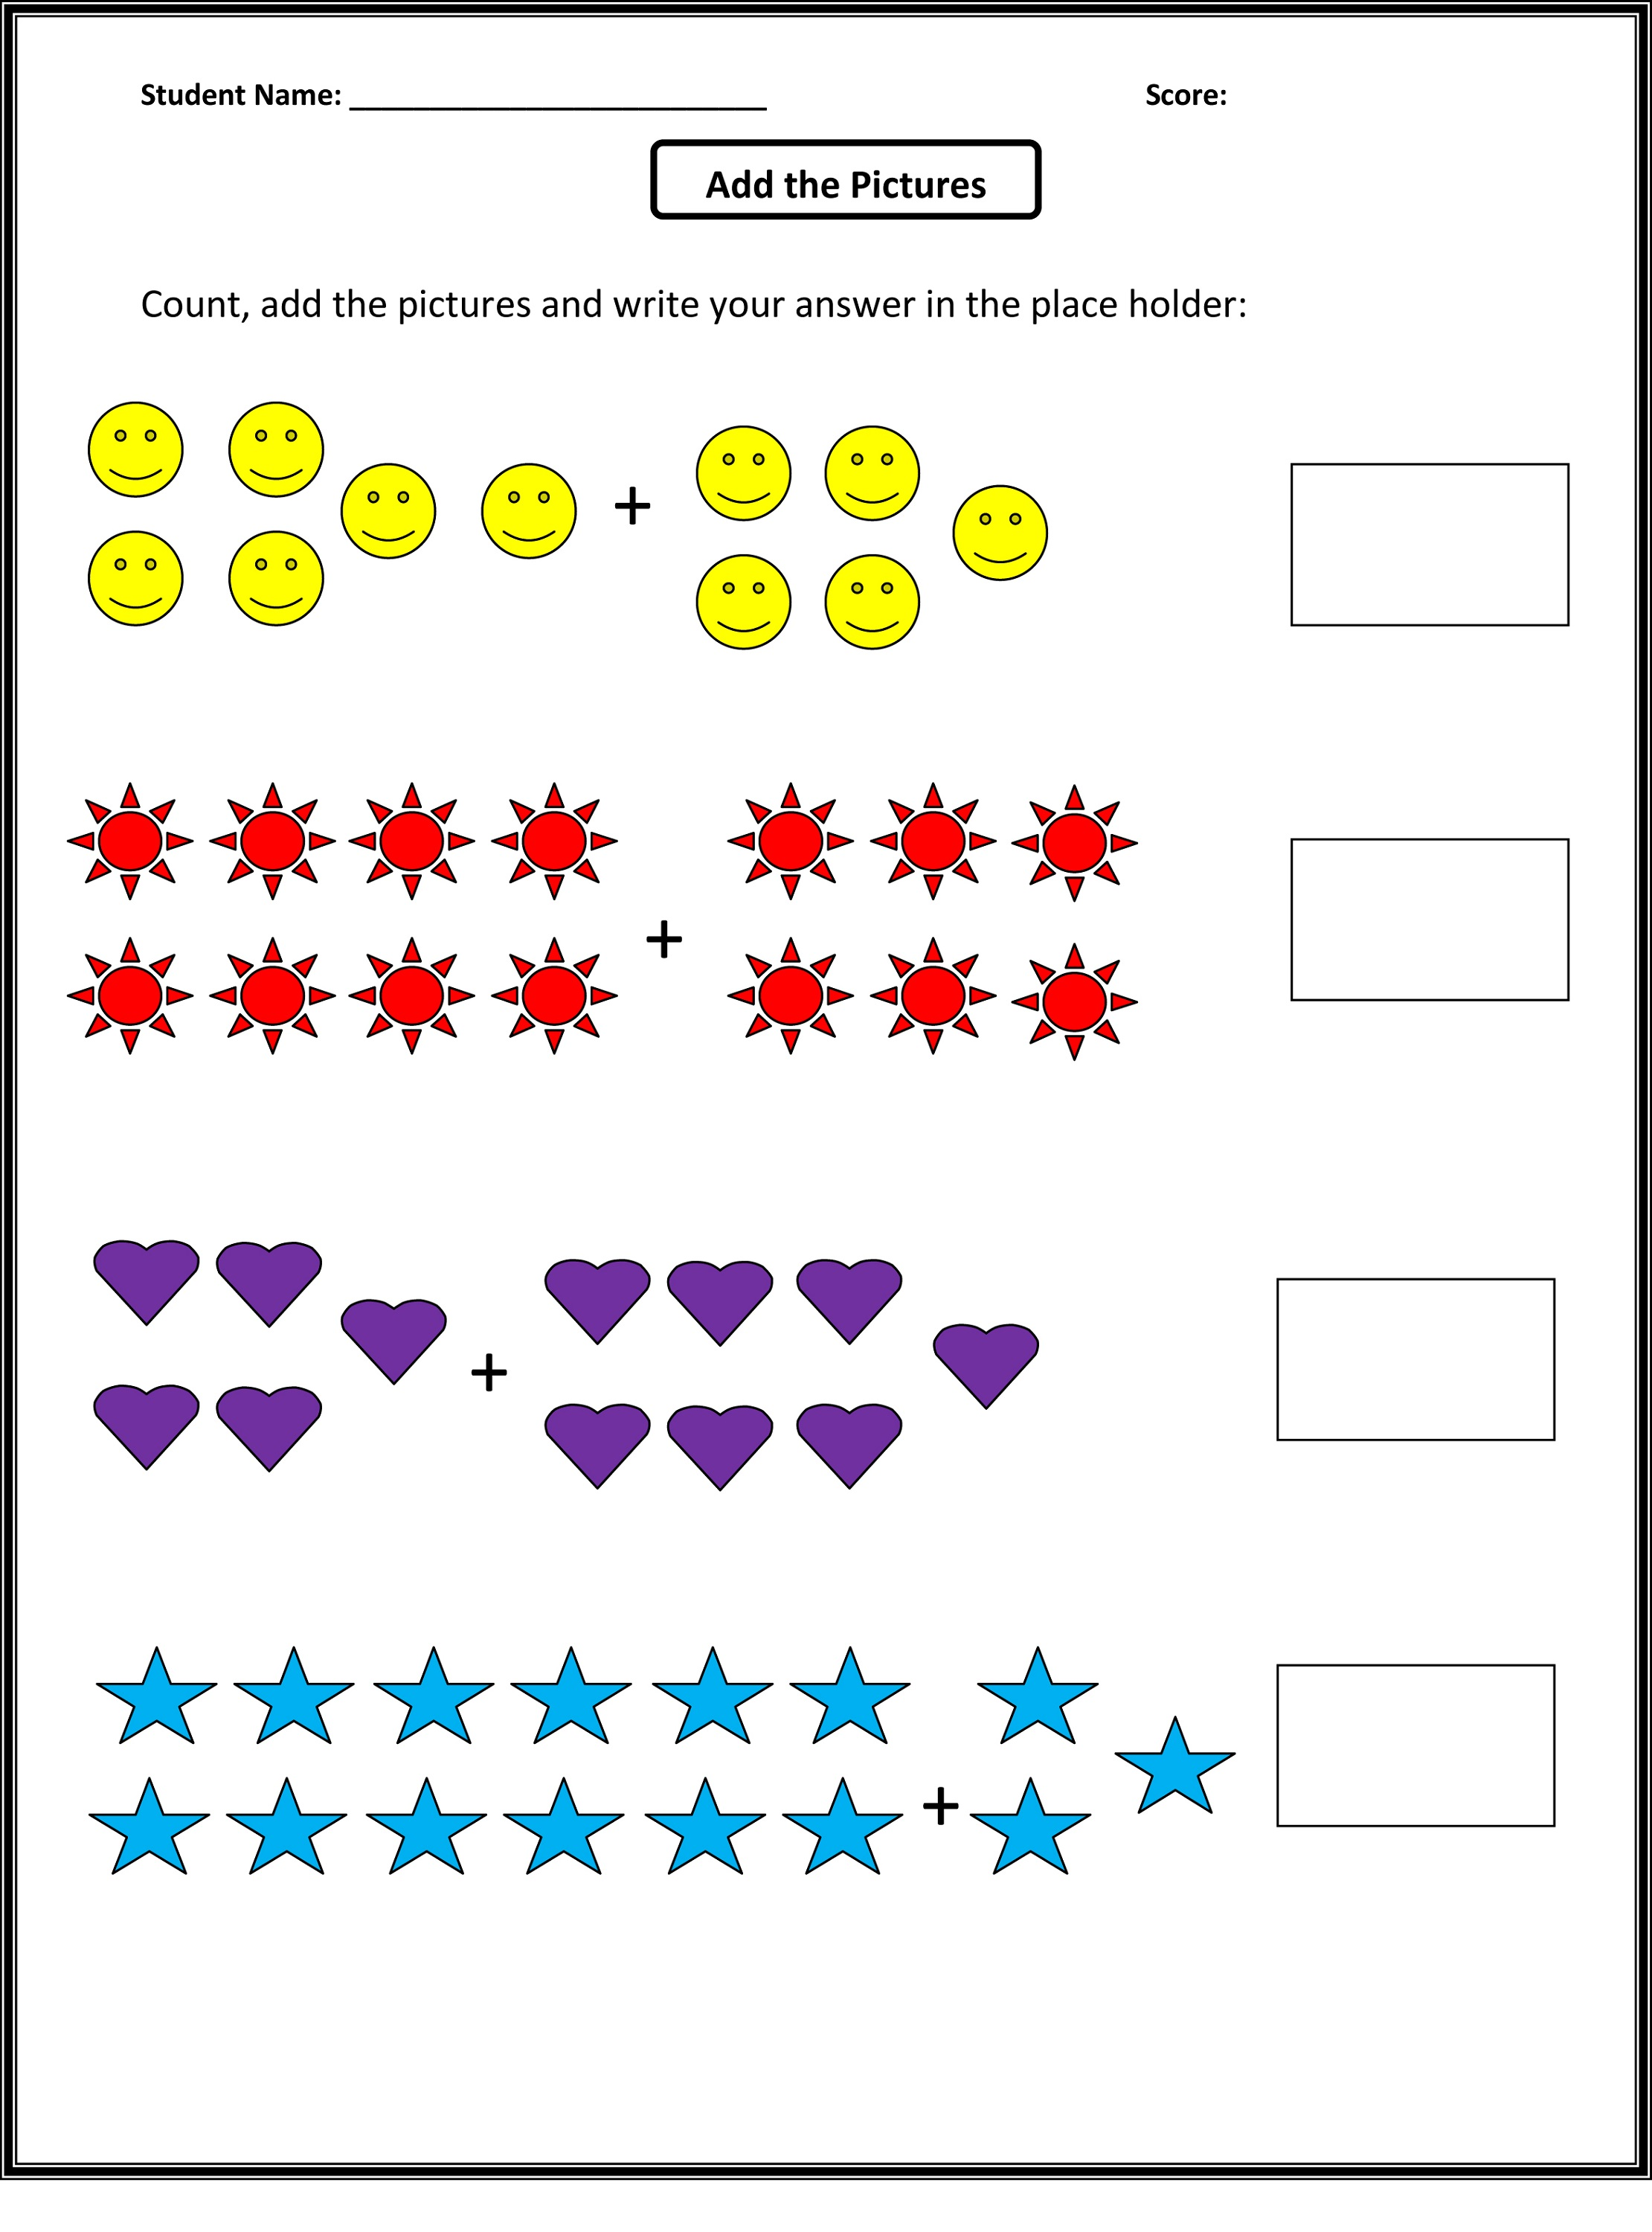 Fun Math Worksheets to Print – Fun Math Worksheets for Kids